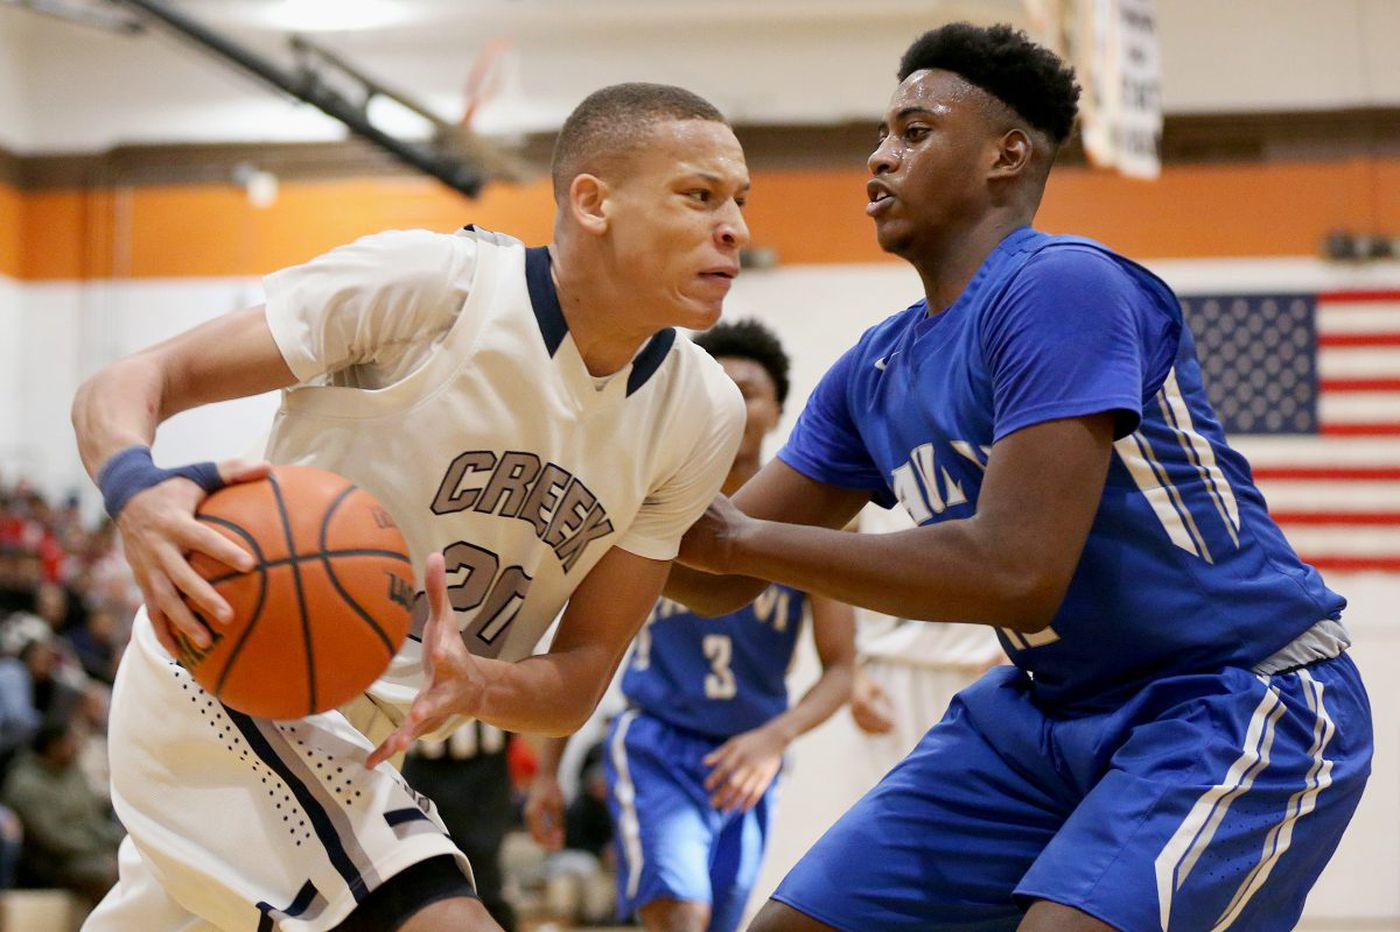 Saturday's S.J. roundup: Ocean City boys' basketball prevails in overtime against Clearview